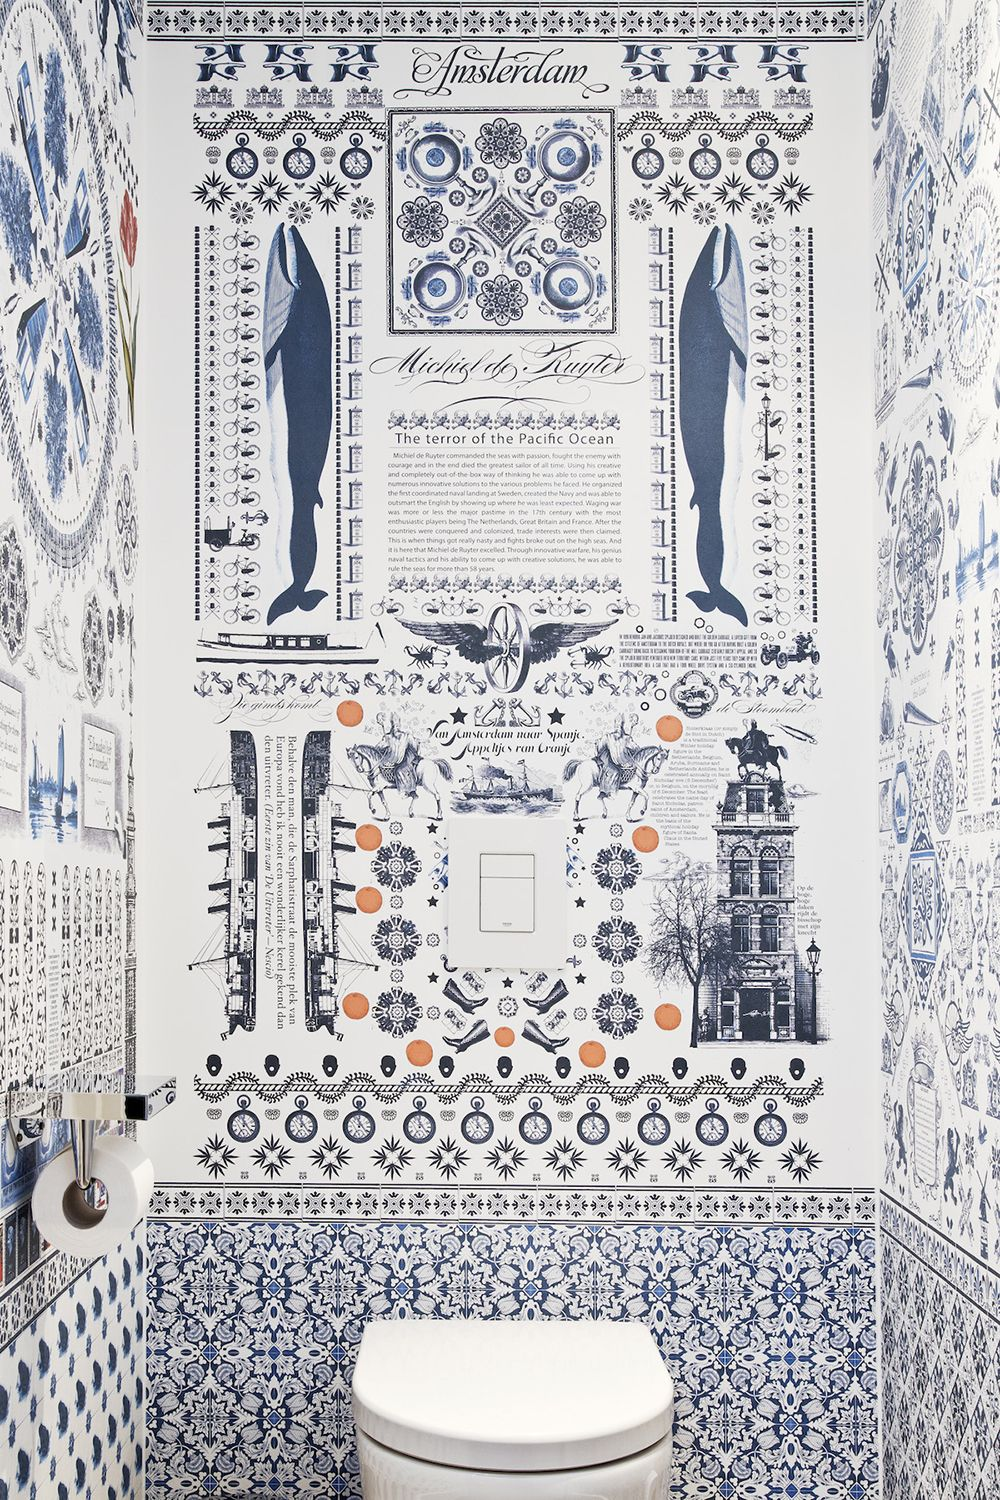 Impressive Bath Bisazza Collection By Marcel Wanders To See